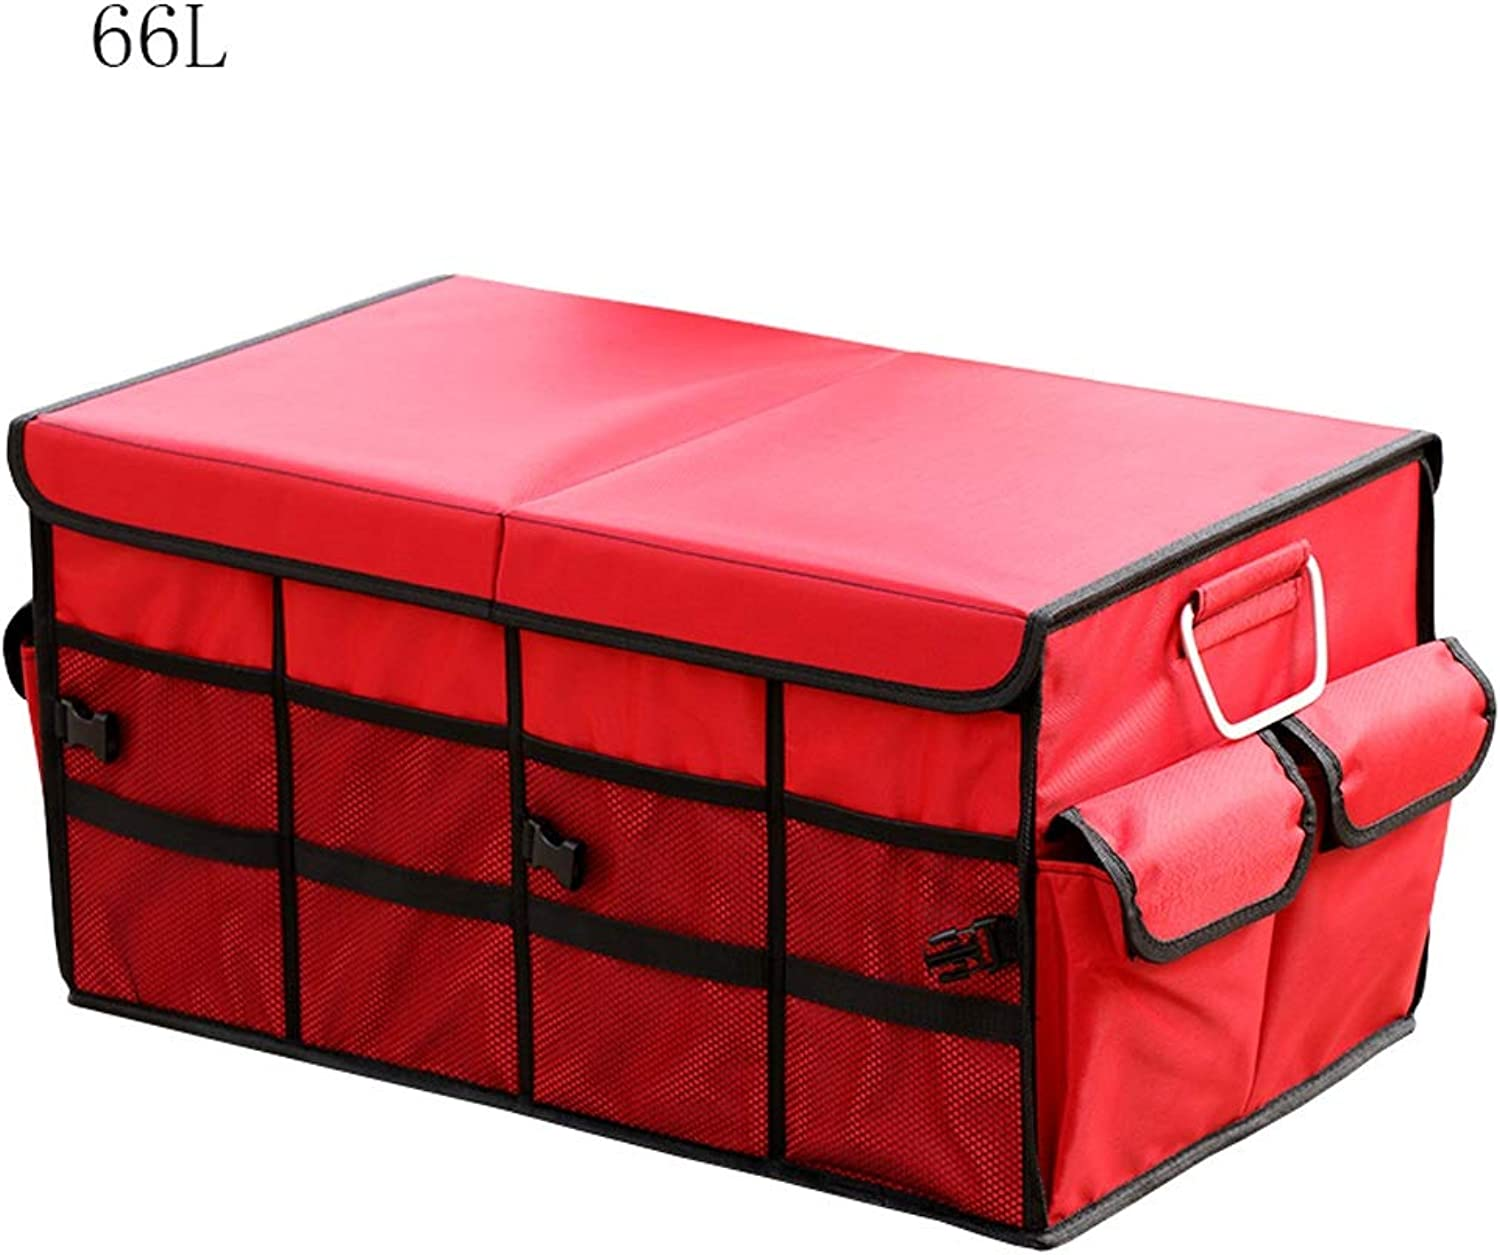 AXWT 66L Multi-Function Box Red Foldable Storage Box Trunk Storeage Compartment Household Car Use Sort Out Trash Box Oxford Cloth (Capacity   66L)